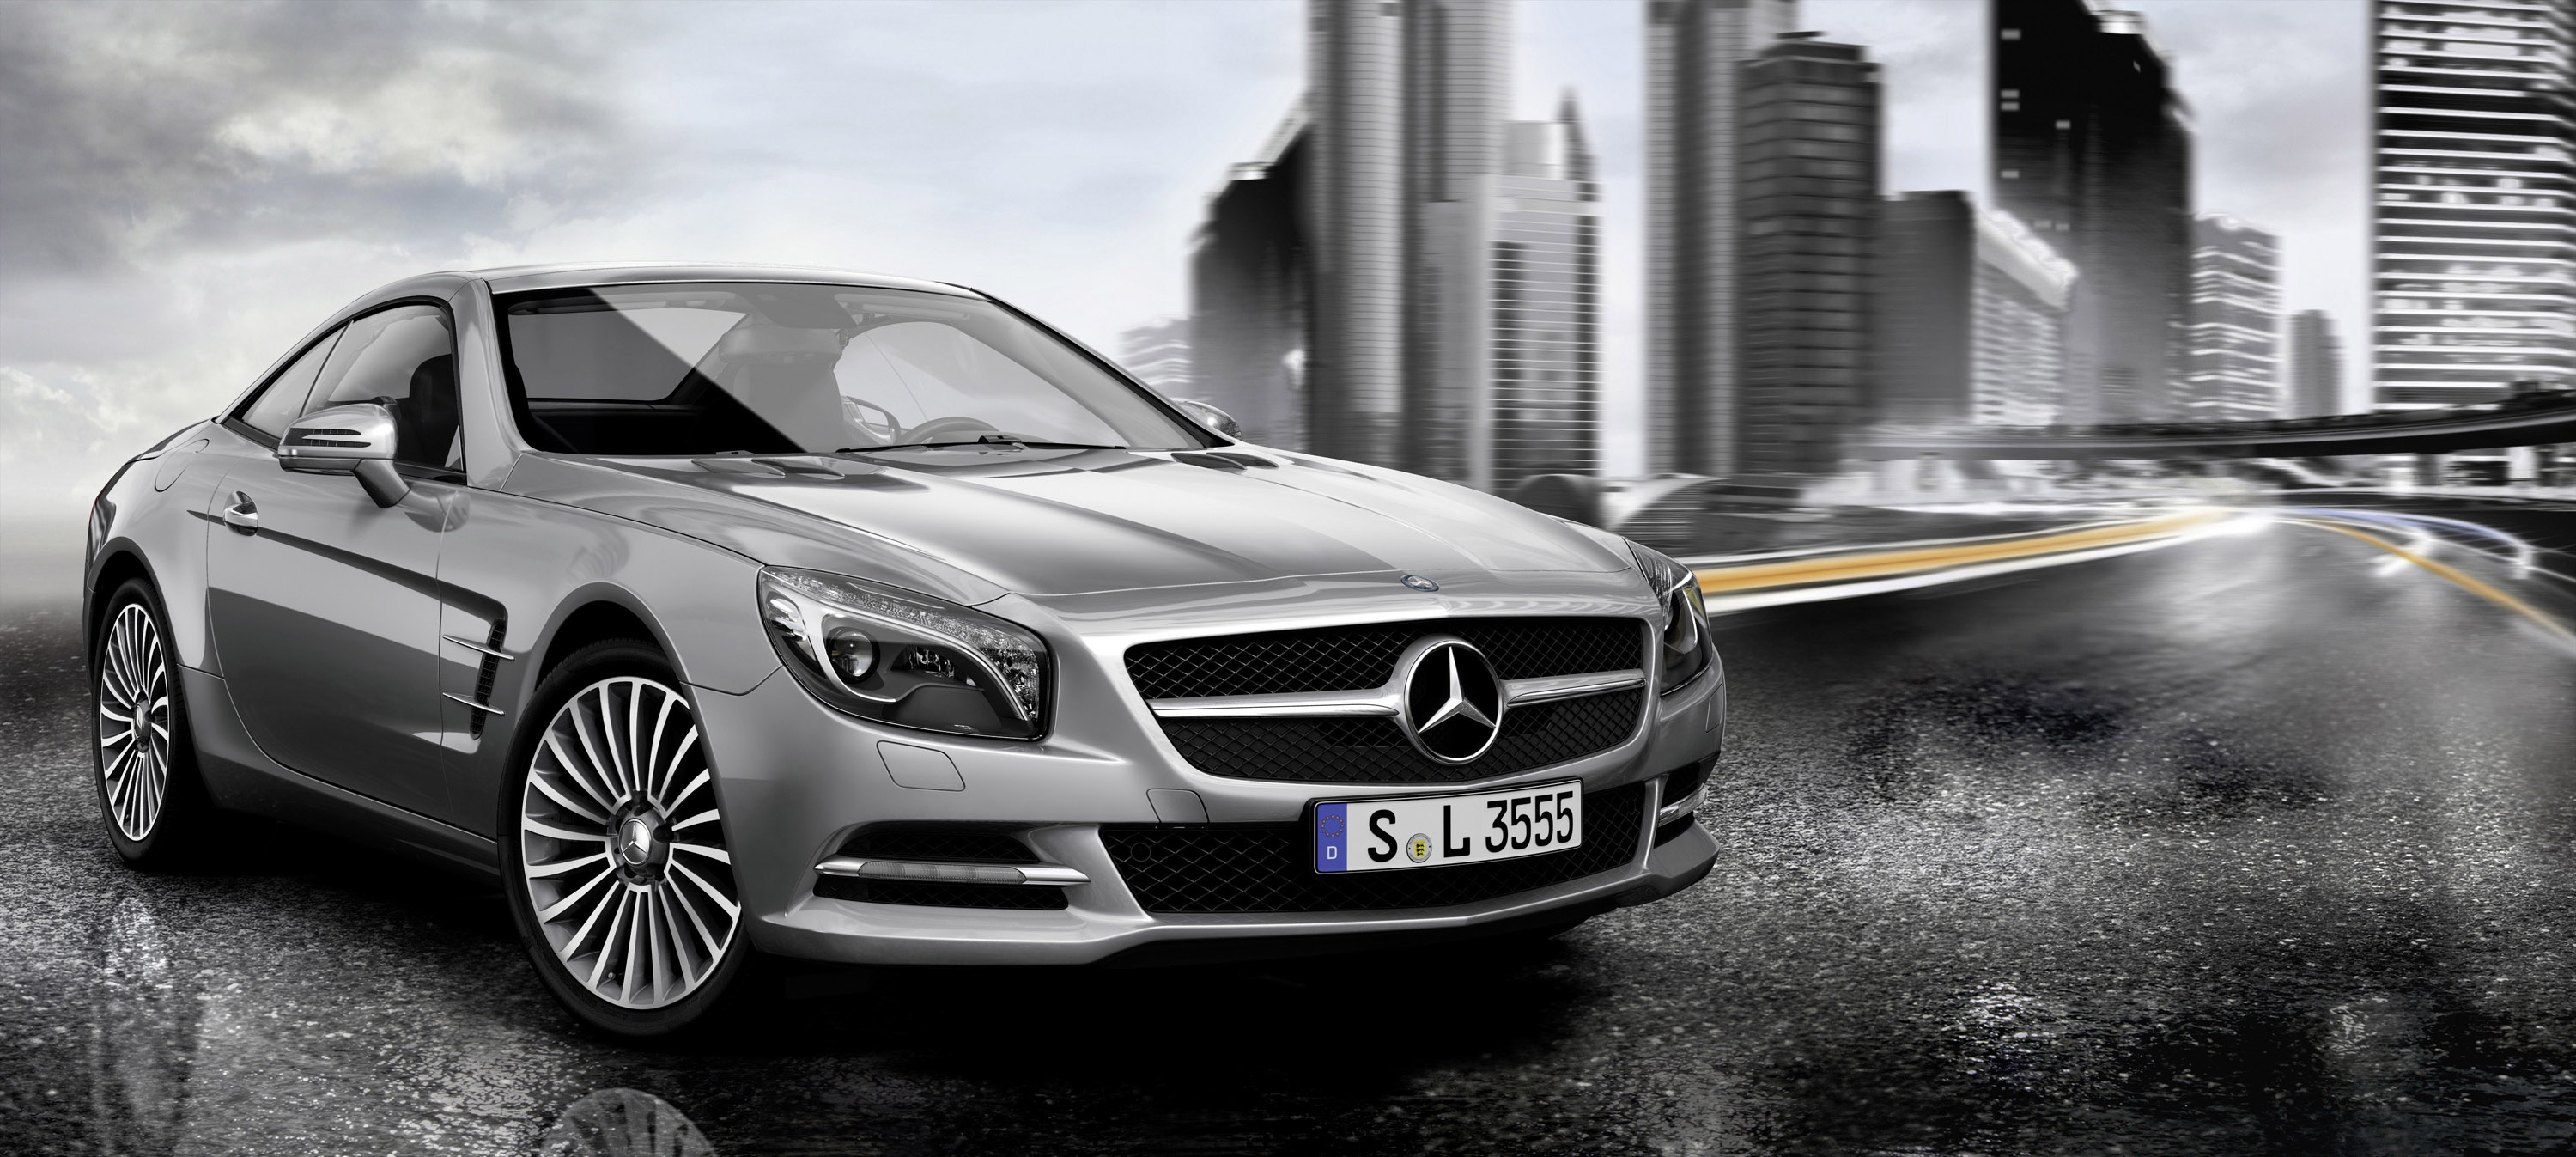 Original accessories for the mercedes benz sl for Mercedes benz accessories